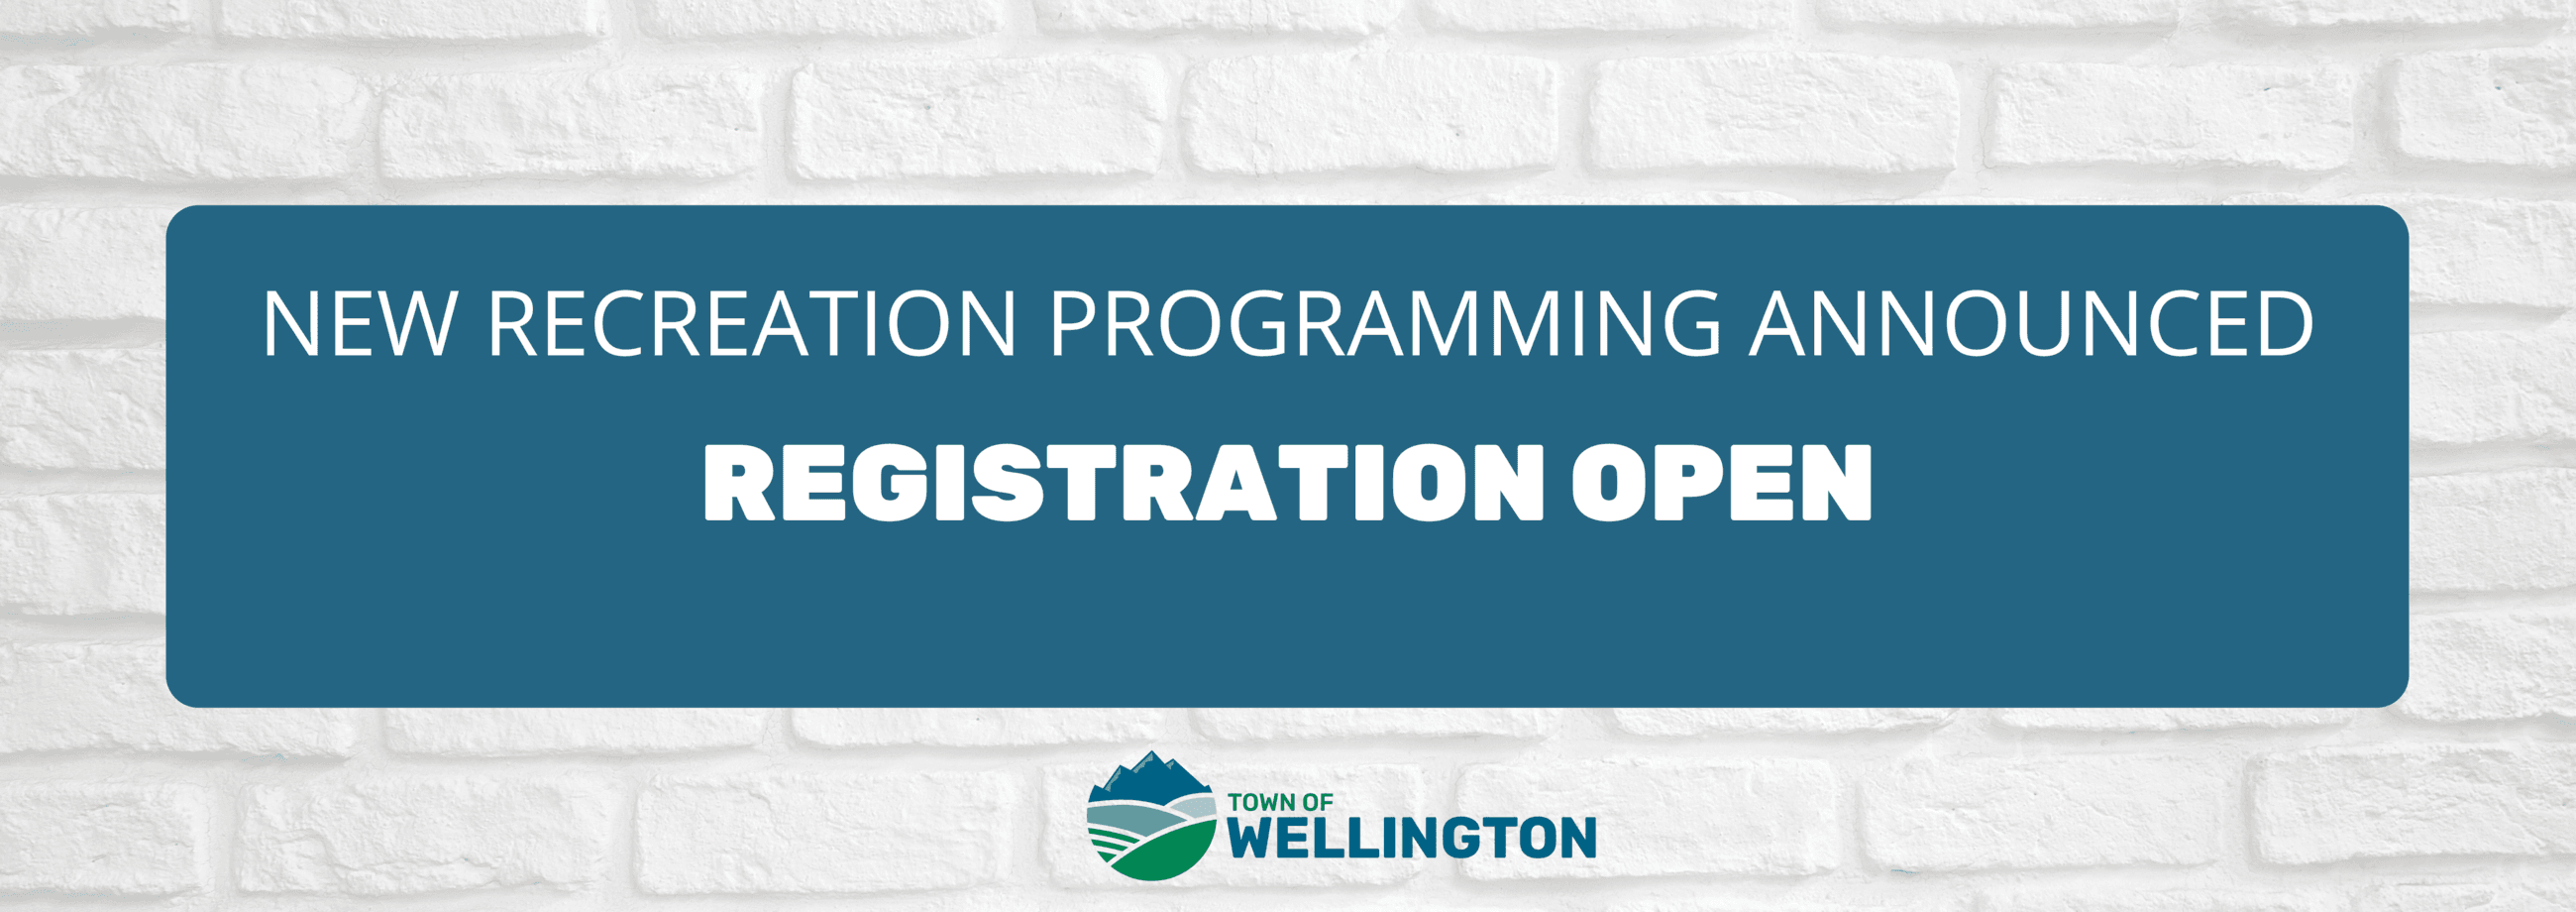 Recreation Registration Open with New Programming Announced